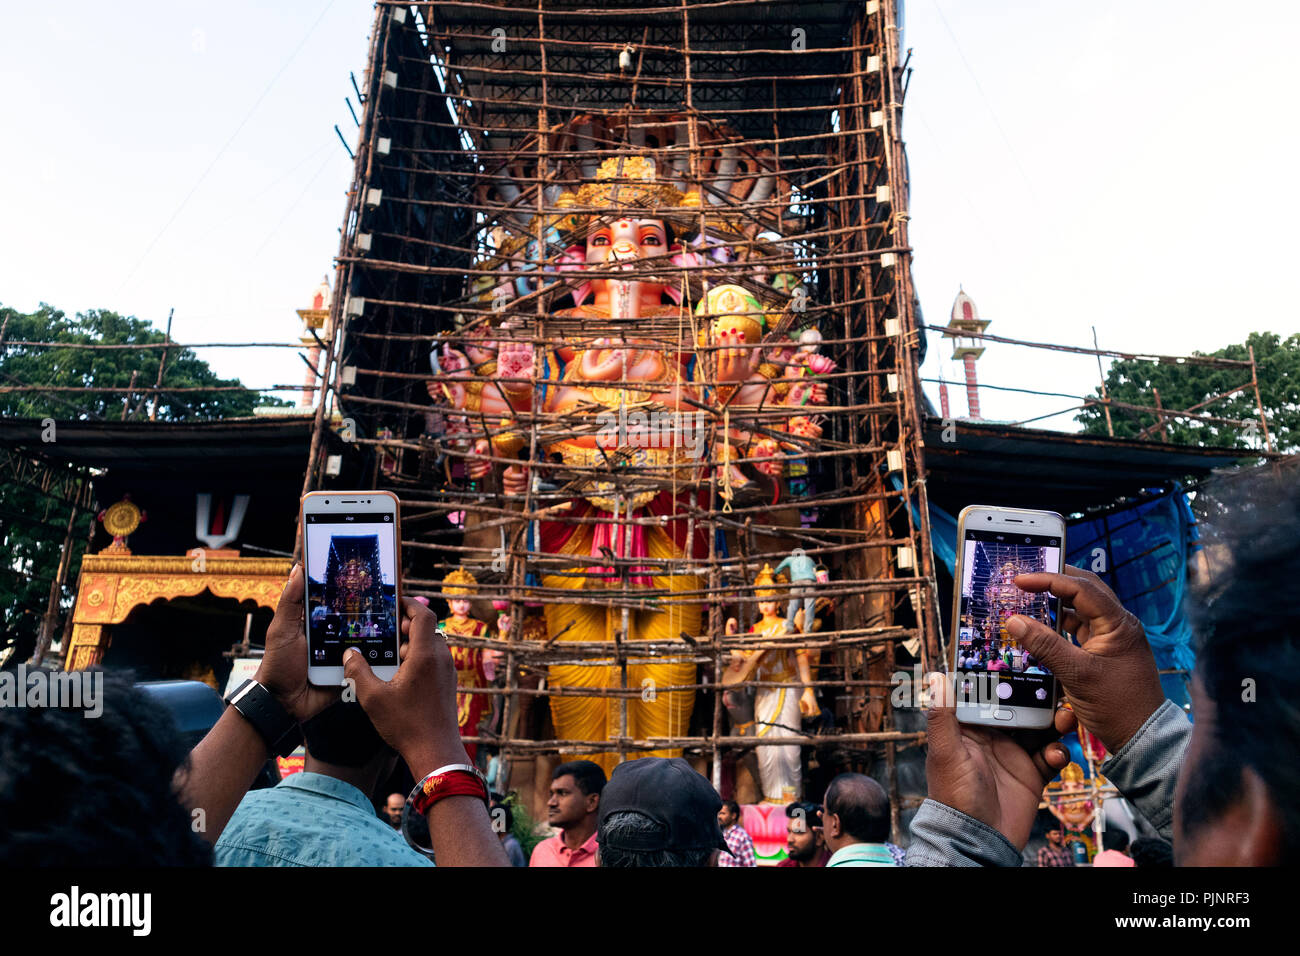 Hyderabad,India. 08th September,2018.People take photographs of 57 feet tall idol of Lord Ganesh popularly known as Khairatabad Ganesh in southern city of Hyderabad, ahead of Ganesh Chaturthi festival which begins on September 13,2018.  Ganesh Chaturthi is a 10-day Hindu festival celebrated throughout India marking the birth of the elephant-headed god Lord Ganesha, the god of prosperity and wisdom.Credit:Sanjay Borra/Alamy Live News. Stock Photo